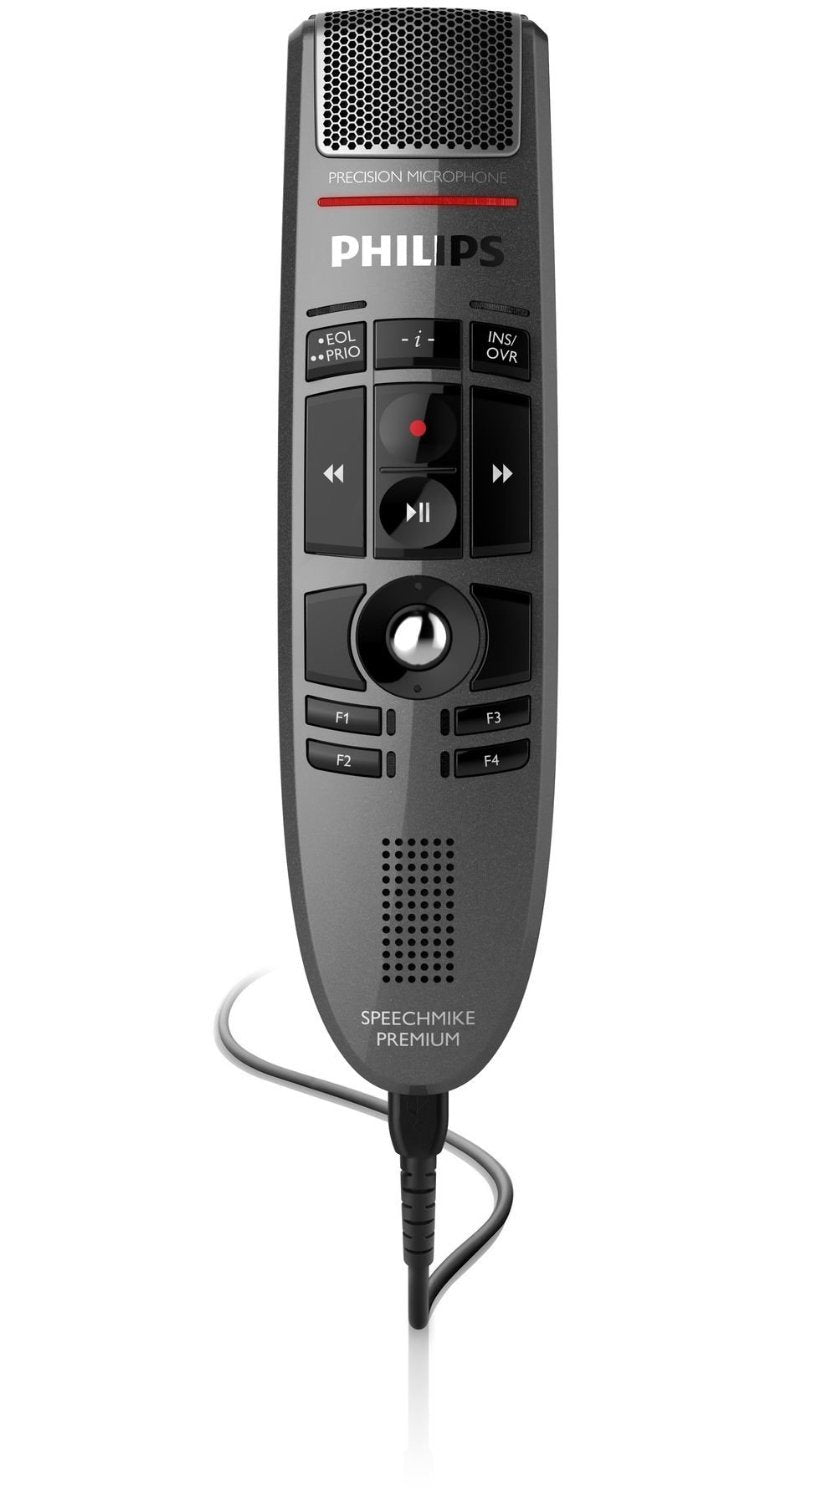 Philips LFH-3500 SpeechMike Push-Button